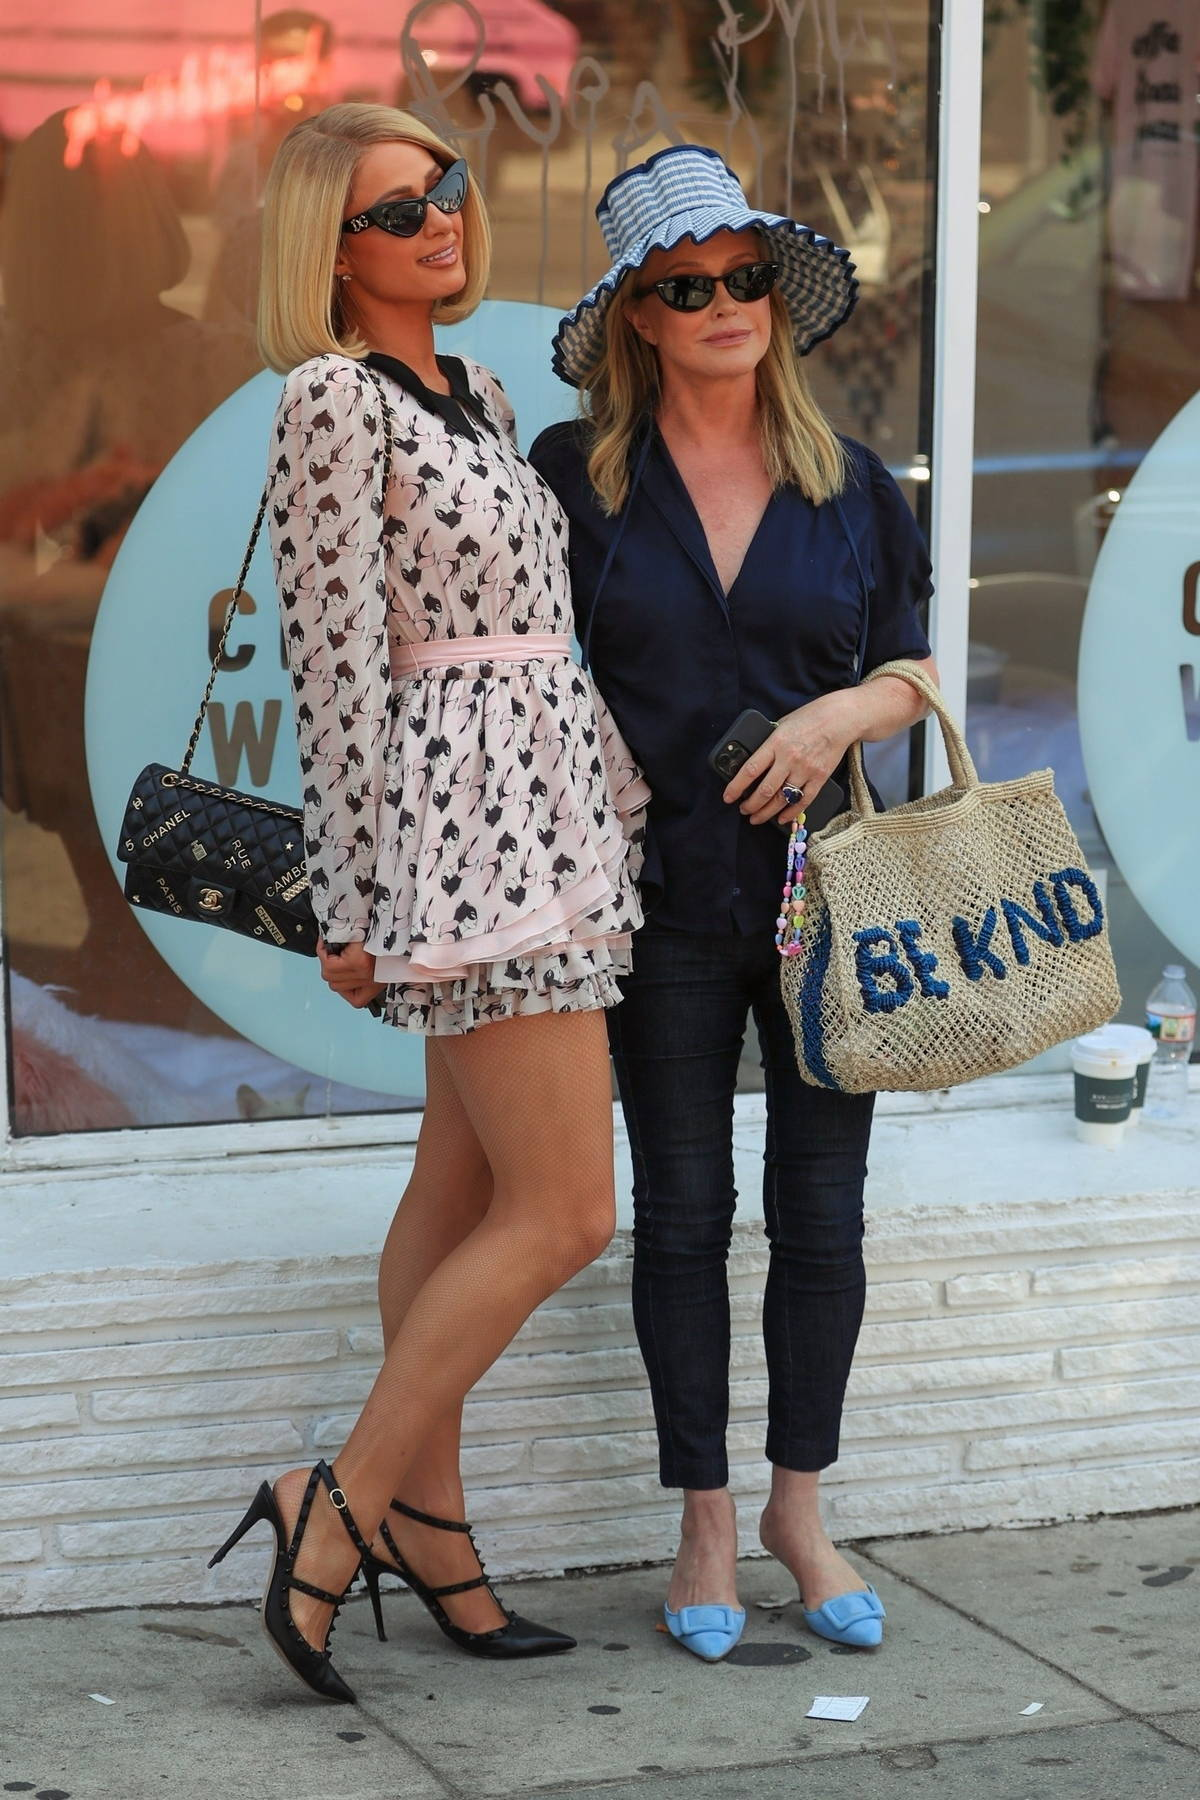 Paris Hilton poses with her mom while filming at Crumbs & Whiskers - Kitten & Cat Cafe on Melrose Ave in Los Angeles